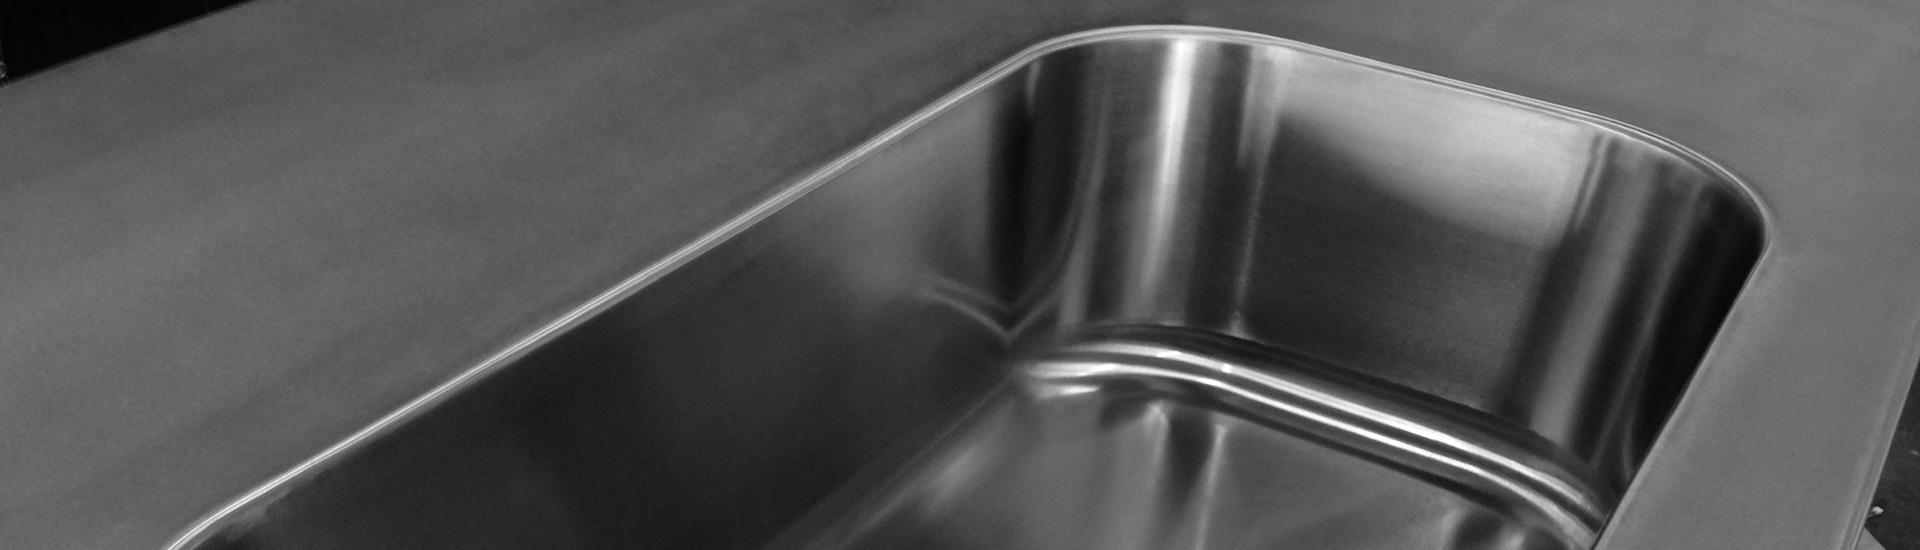 Stainless Commercial Sinks & Counters